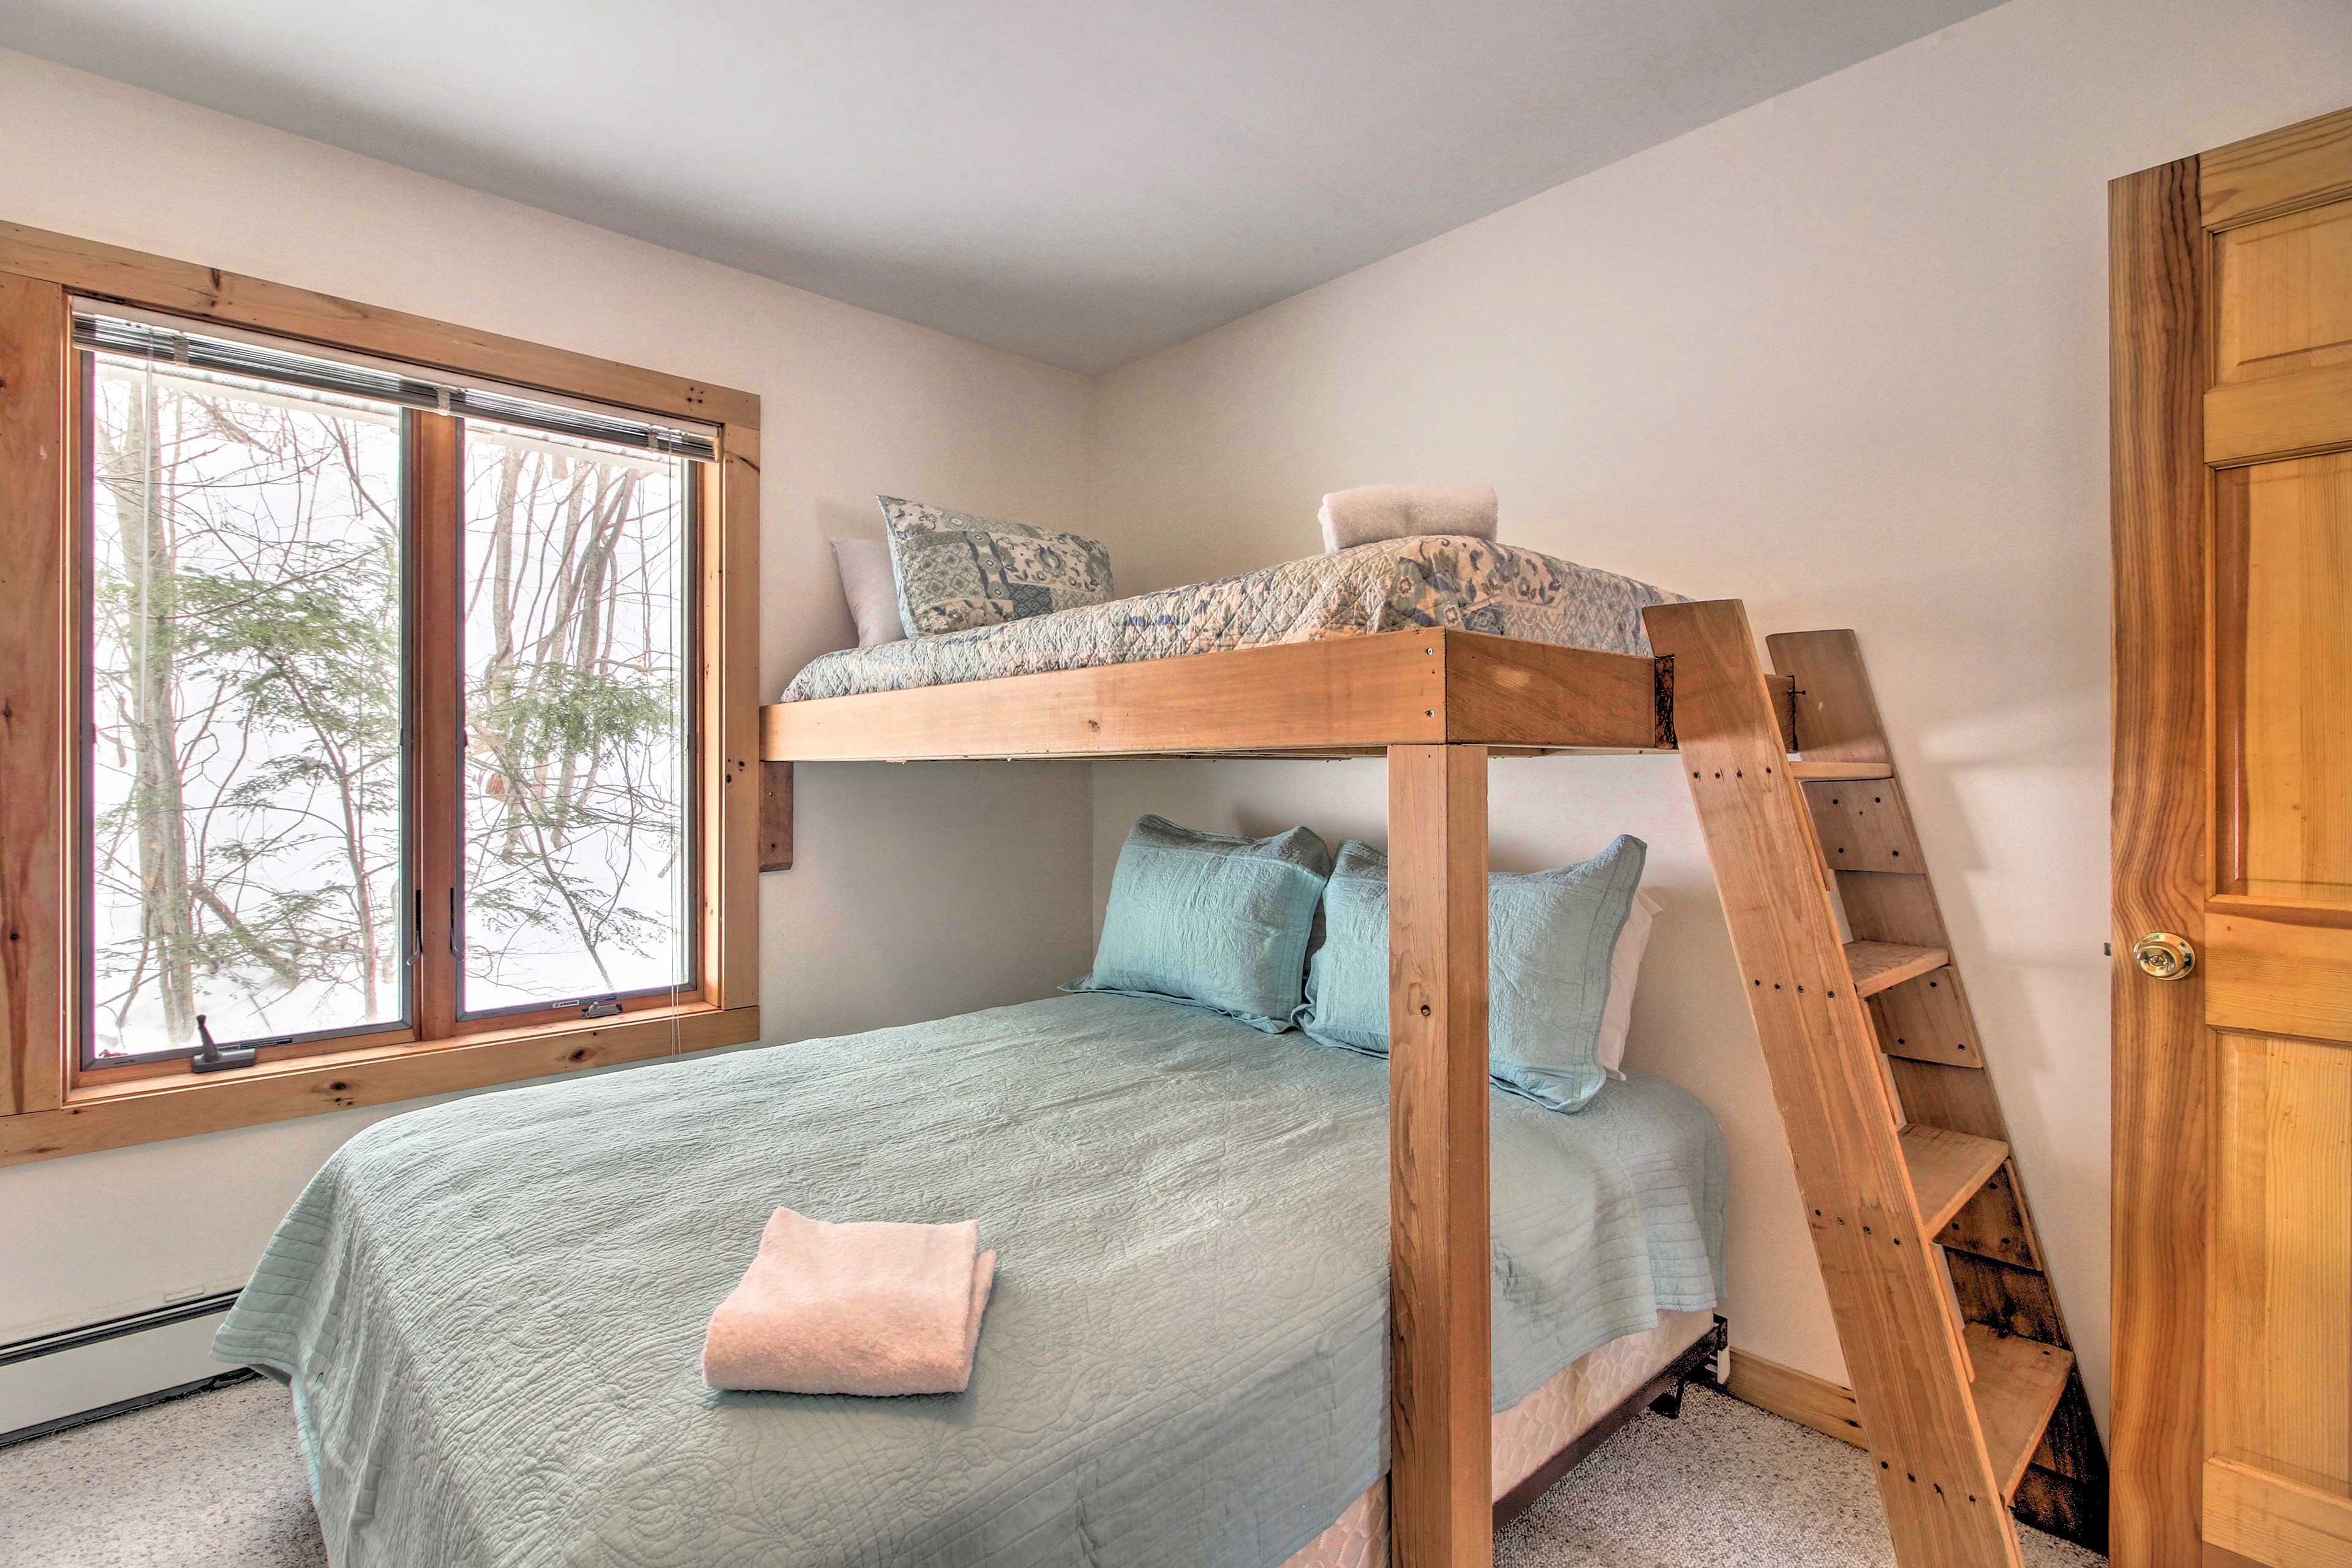 This room sleeps 3 in a twin/full bunk bed.